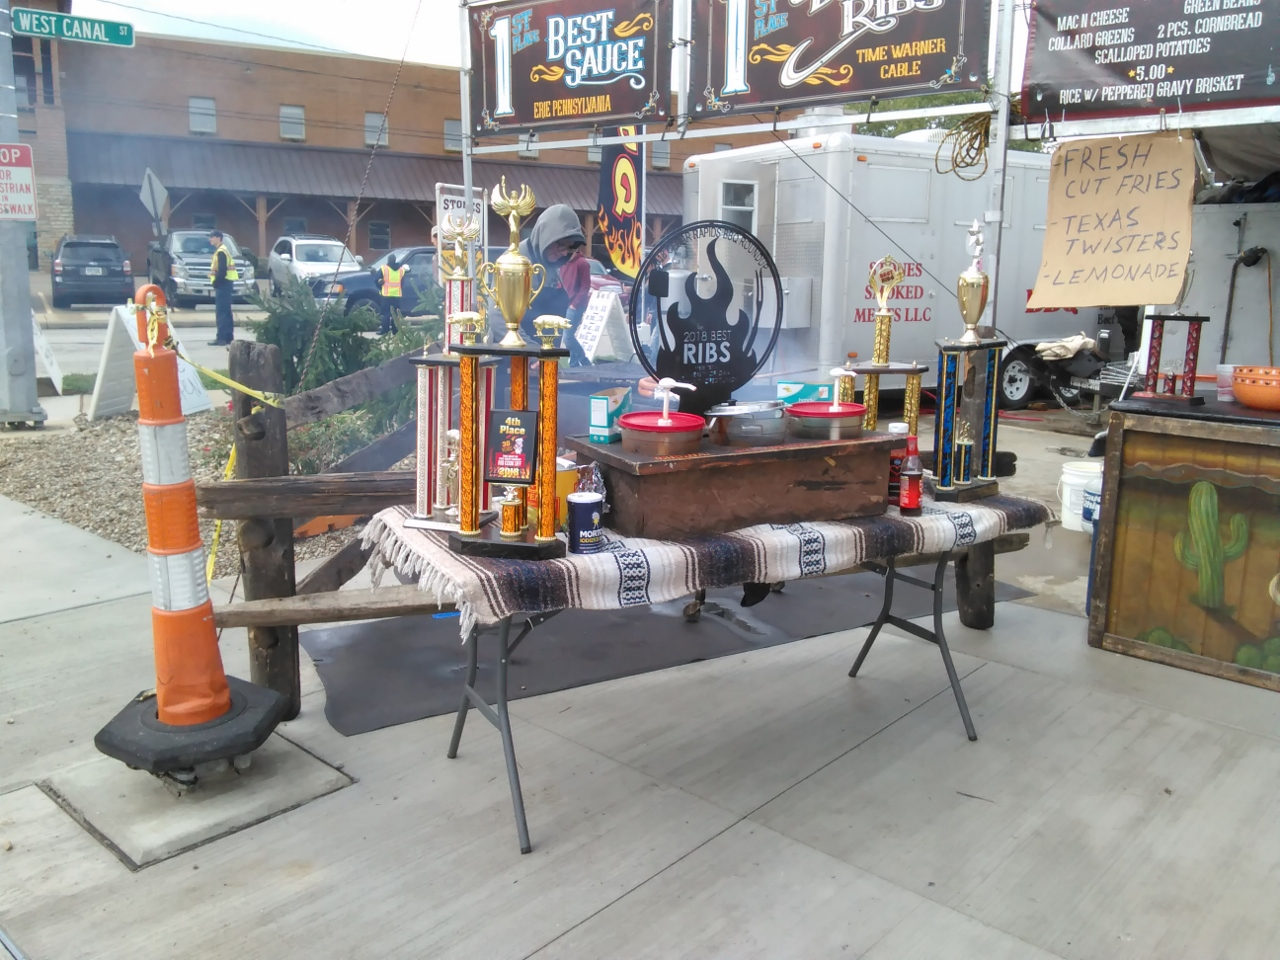 Ohio Smoked Meat Festival 2018 10-20-2018 11-06-01 AM